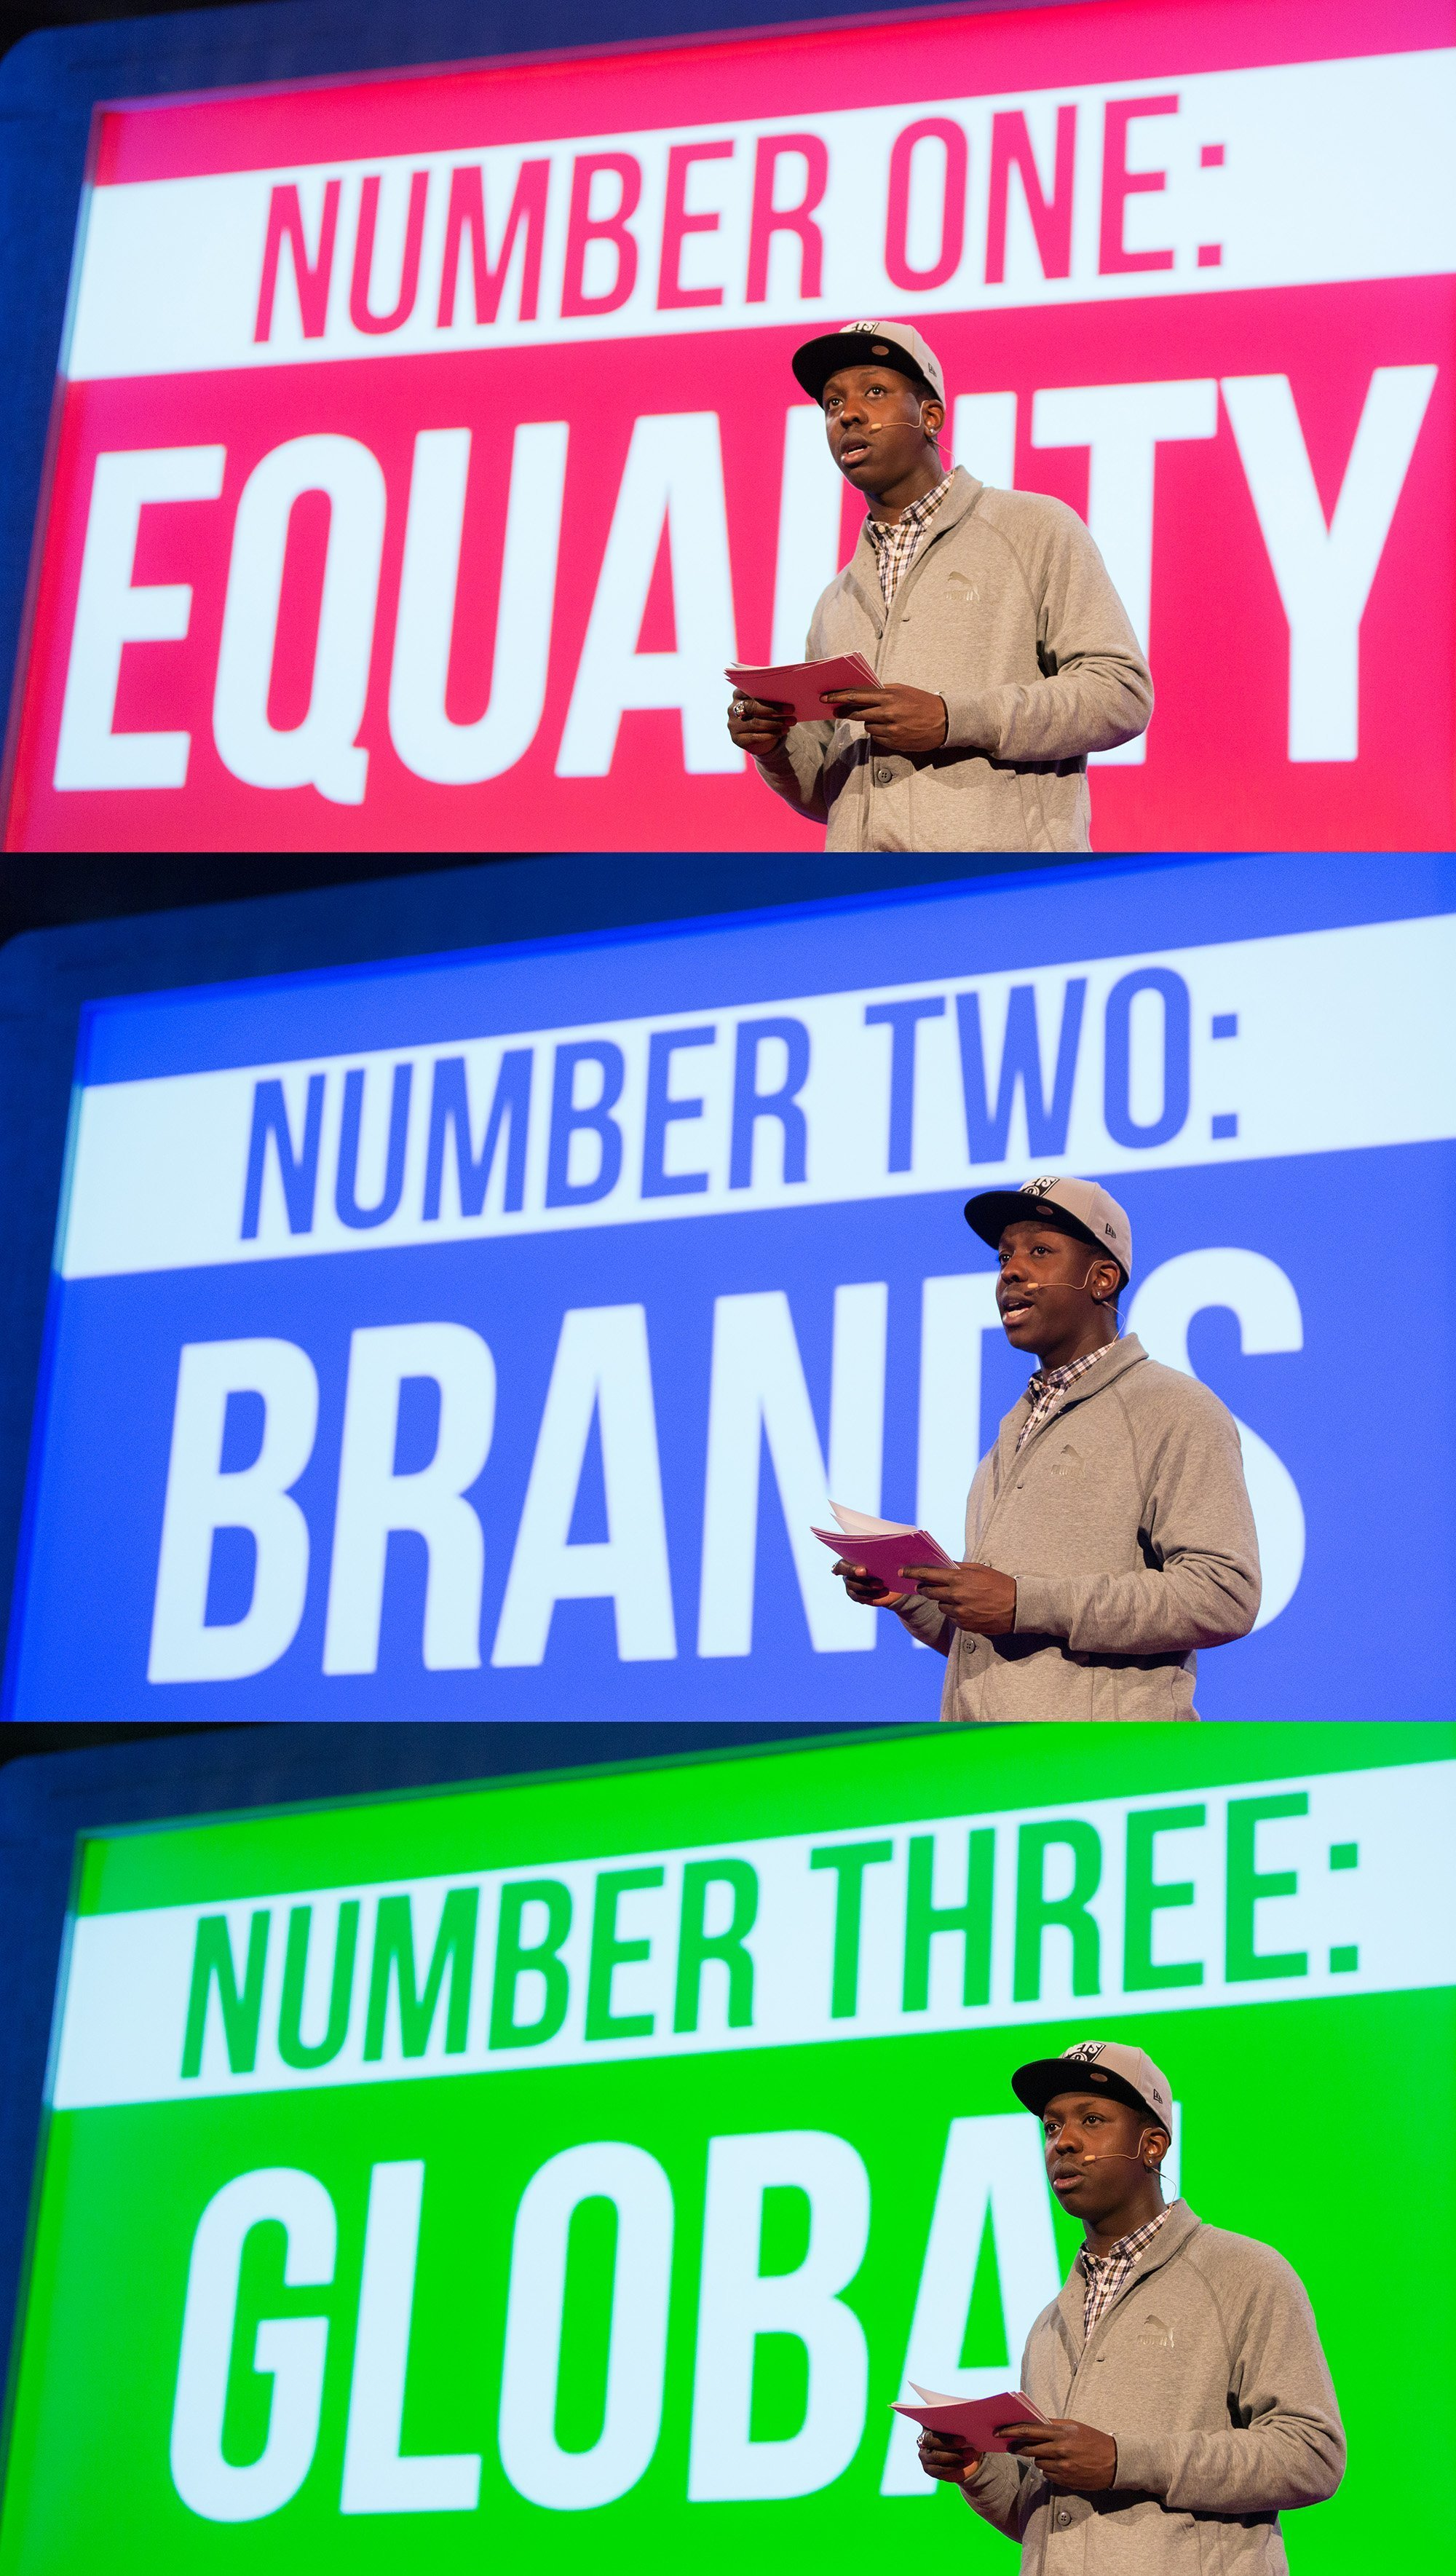 2 Equality Brands Global